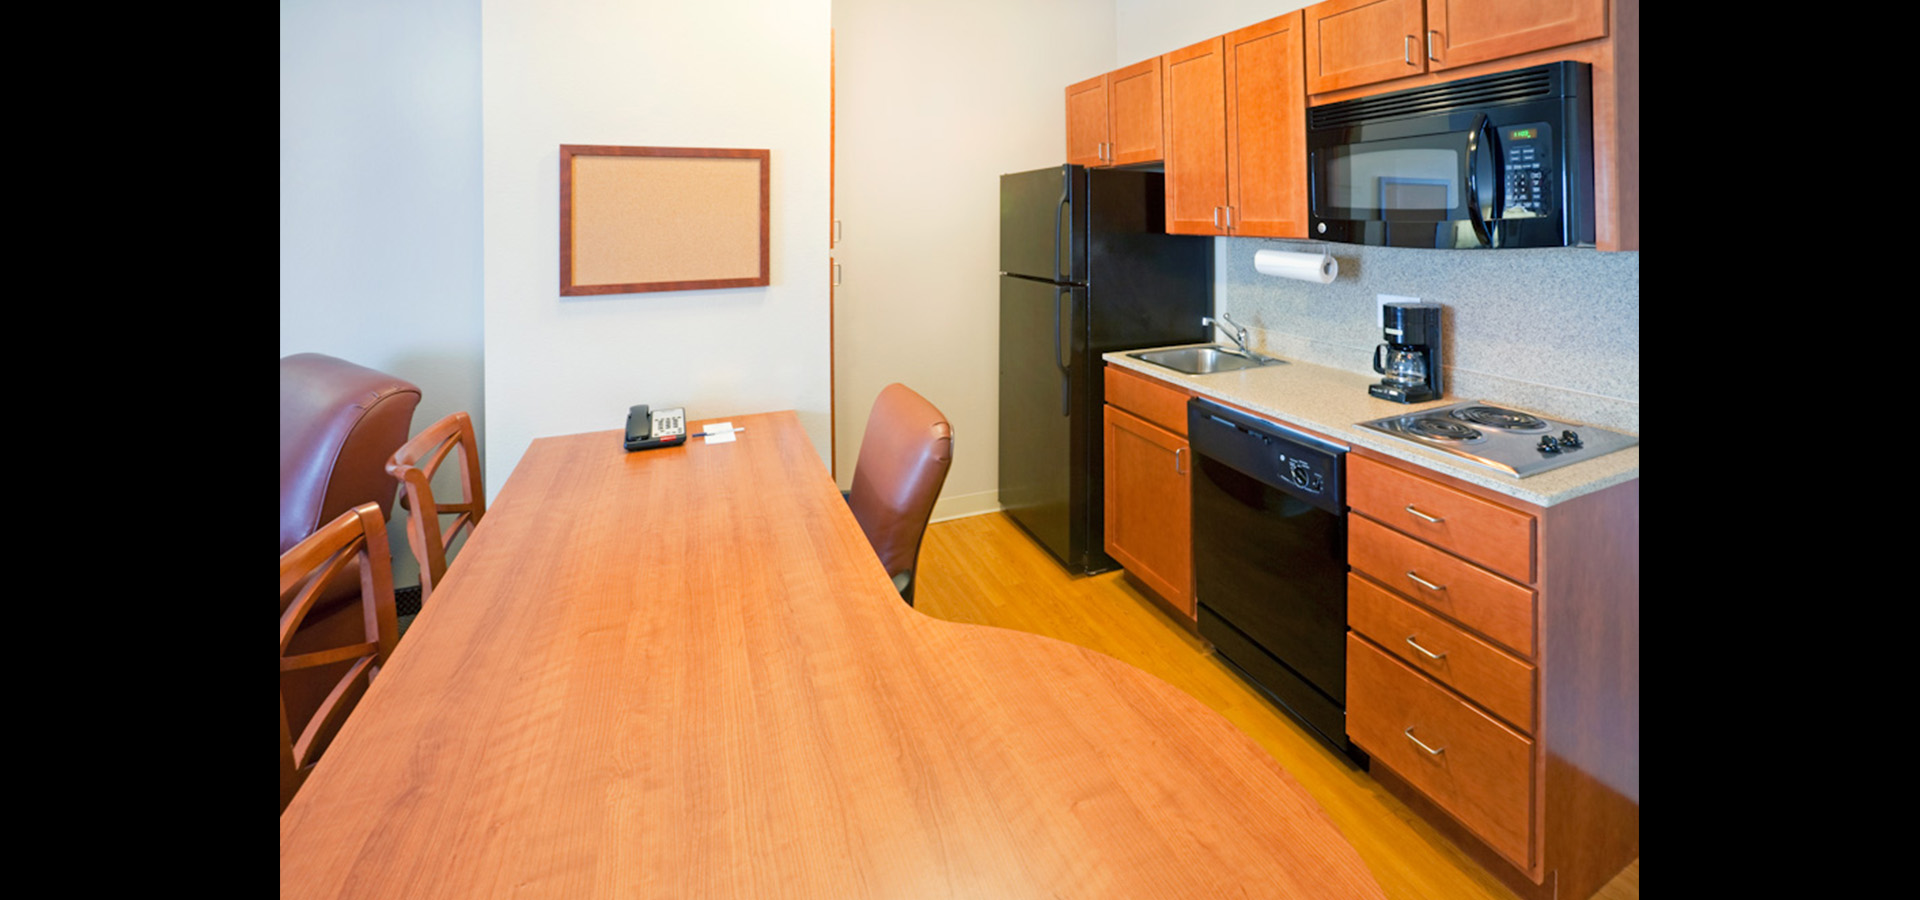 Candlewood Suites DFW South_01